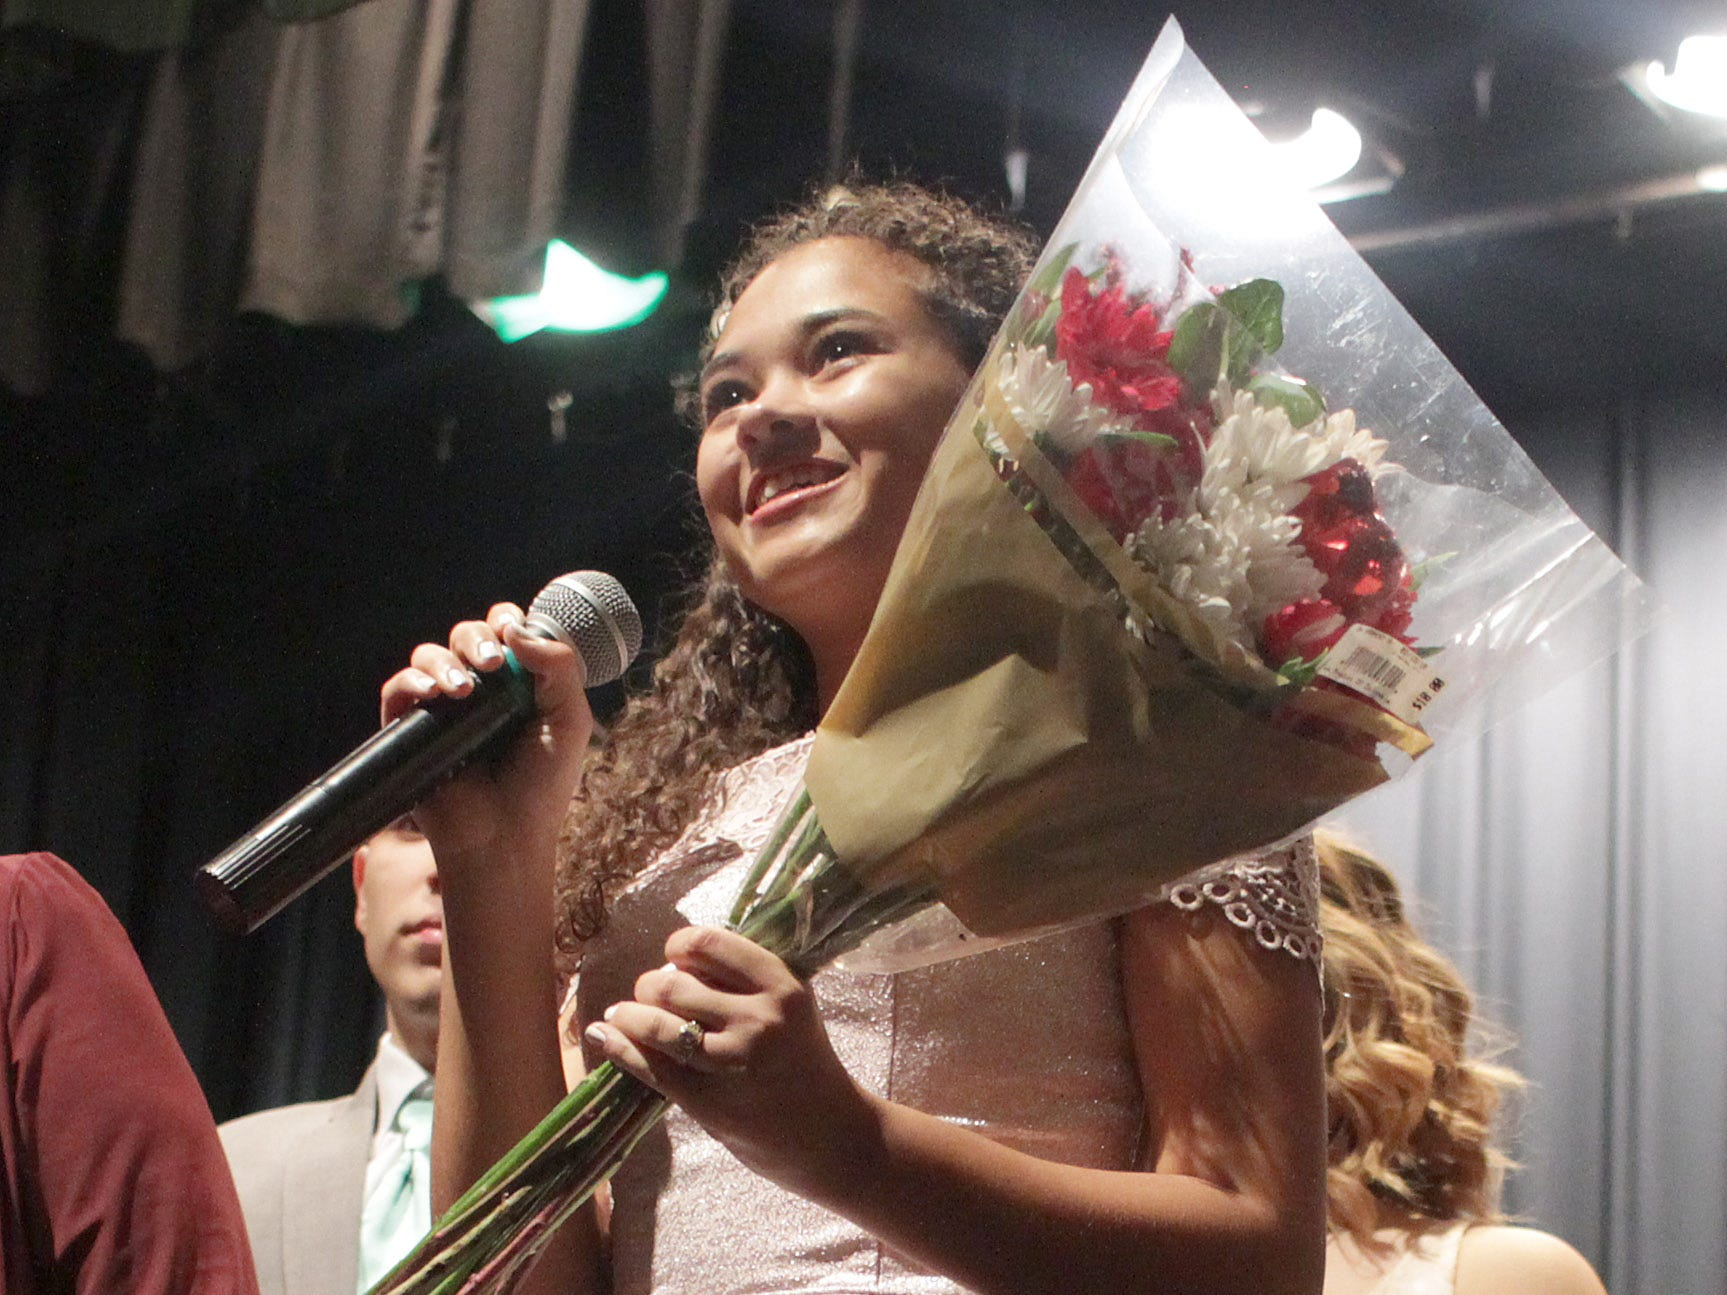 Gallatin High Senior Rachel Broadrick thanks all for their help putting on their annual Prom Show on Saturday, February 2, 2019.